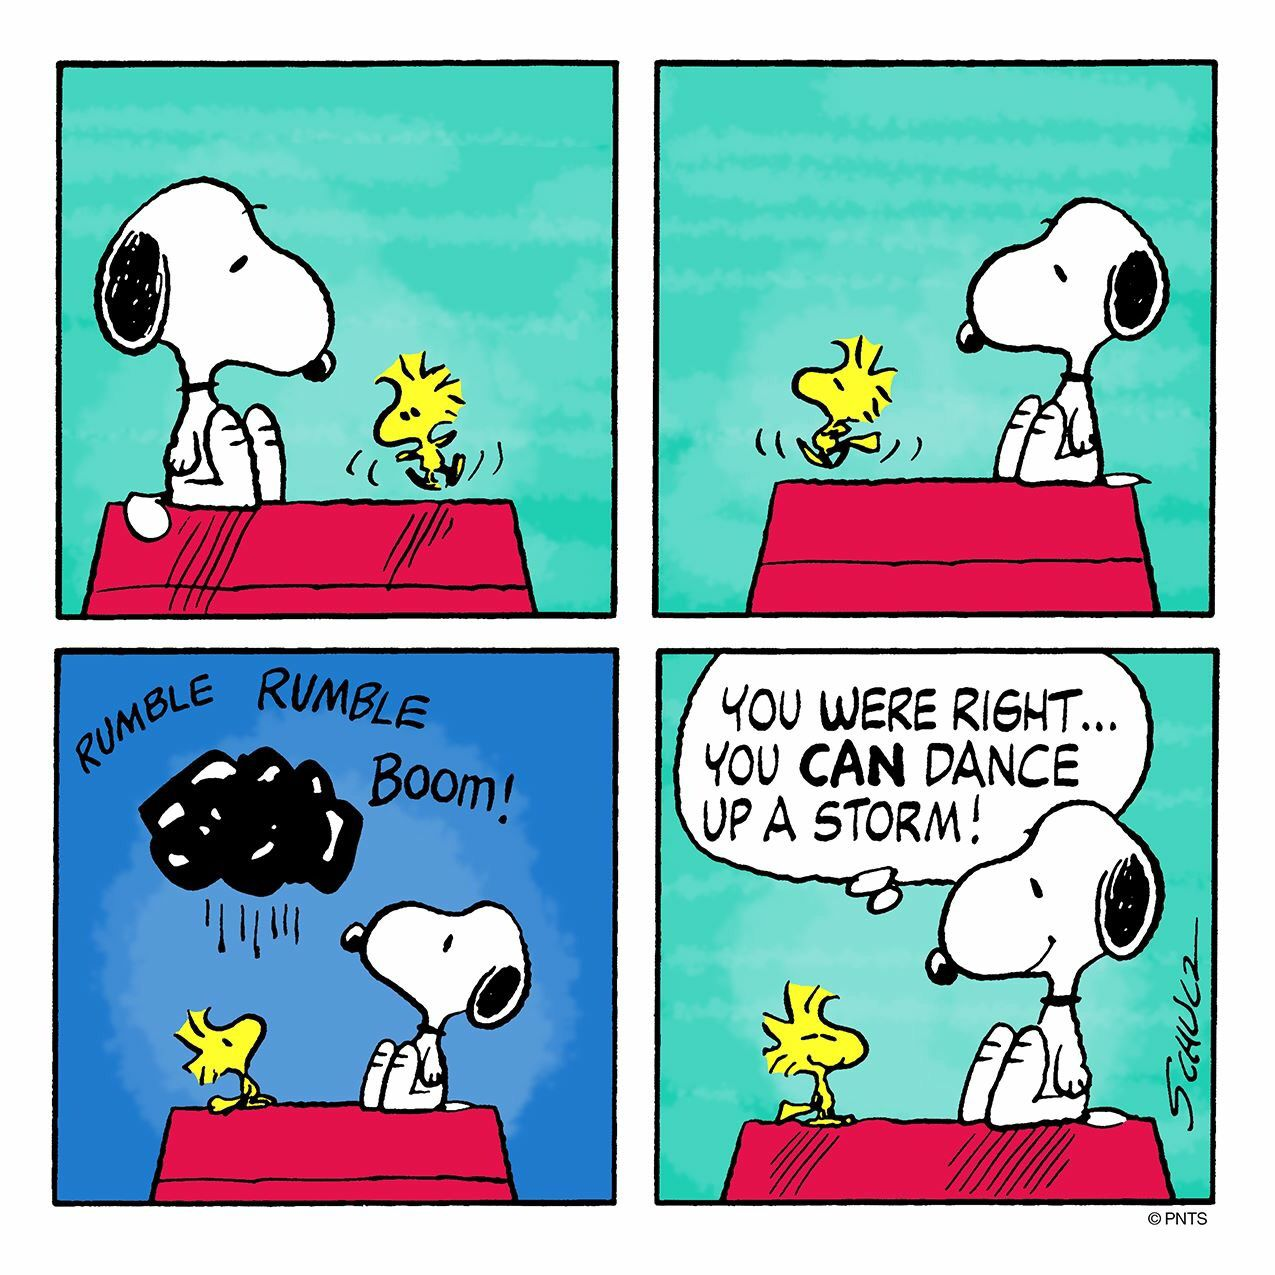 Woodstock really can dance!